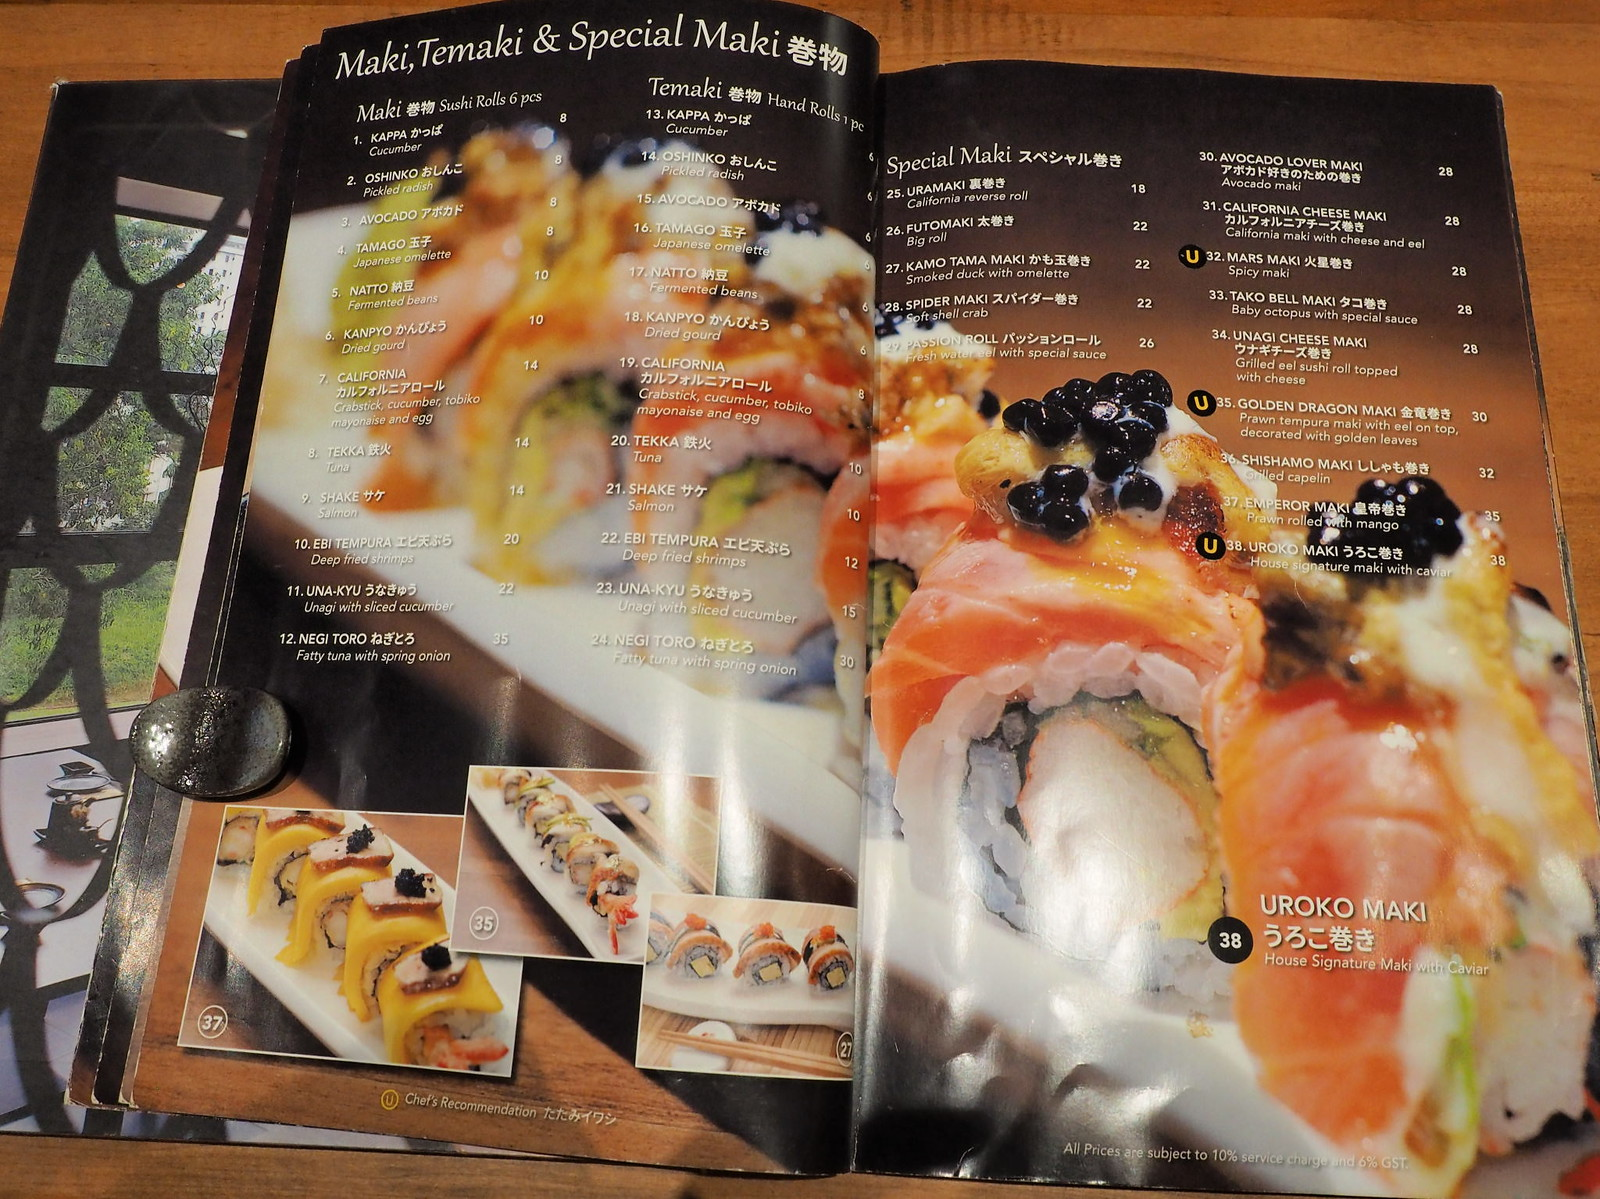 Maki, Temaki and Special Maki menu